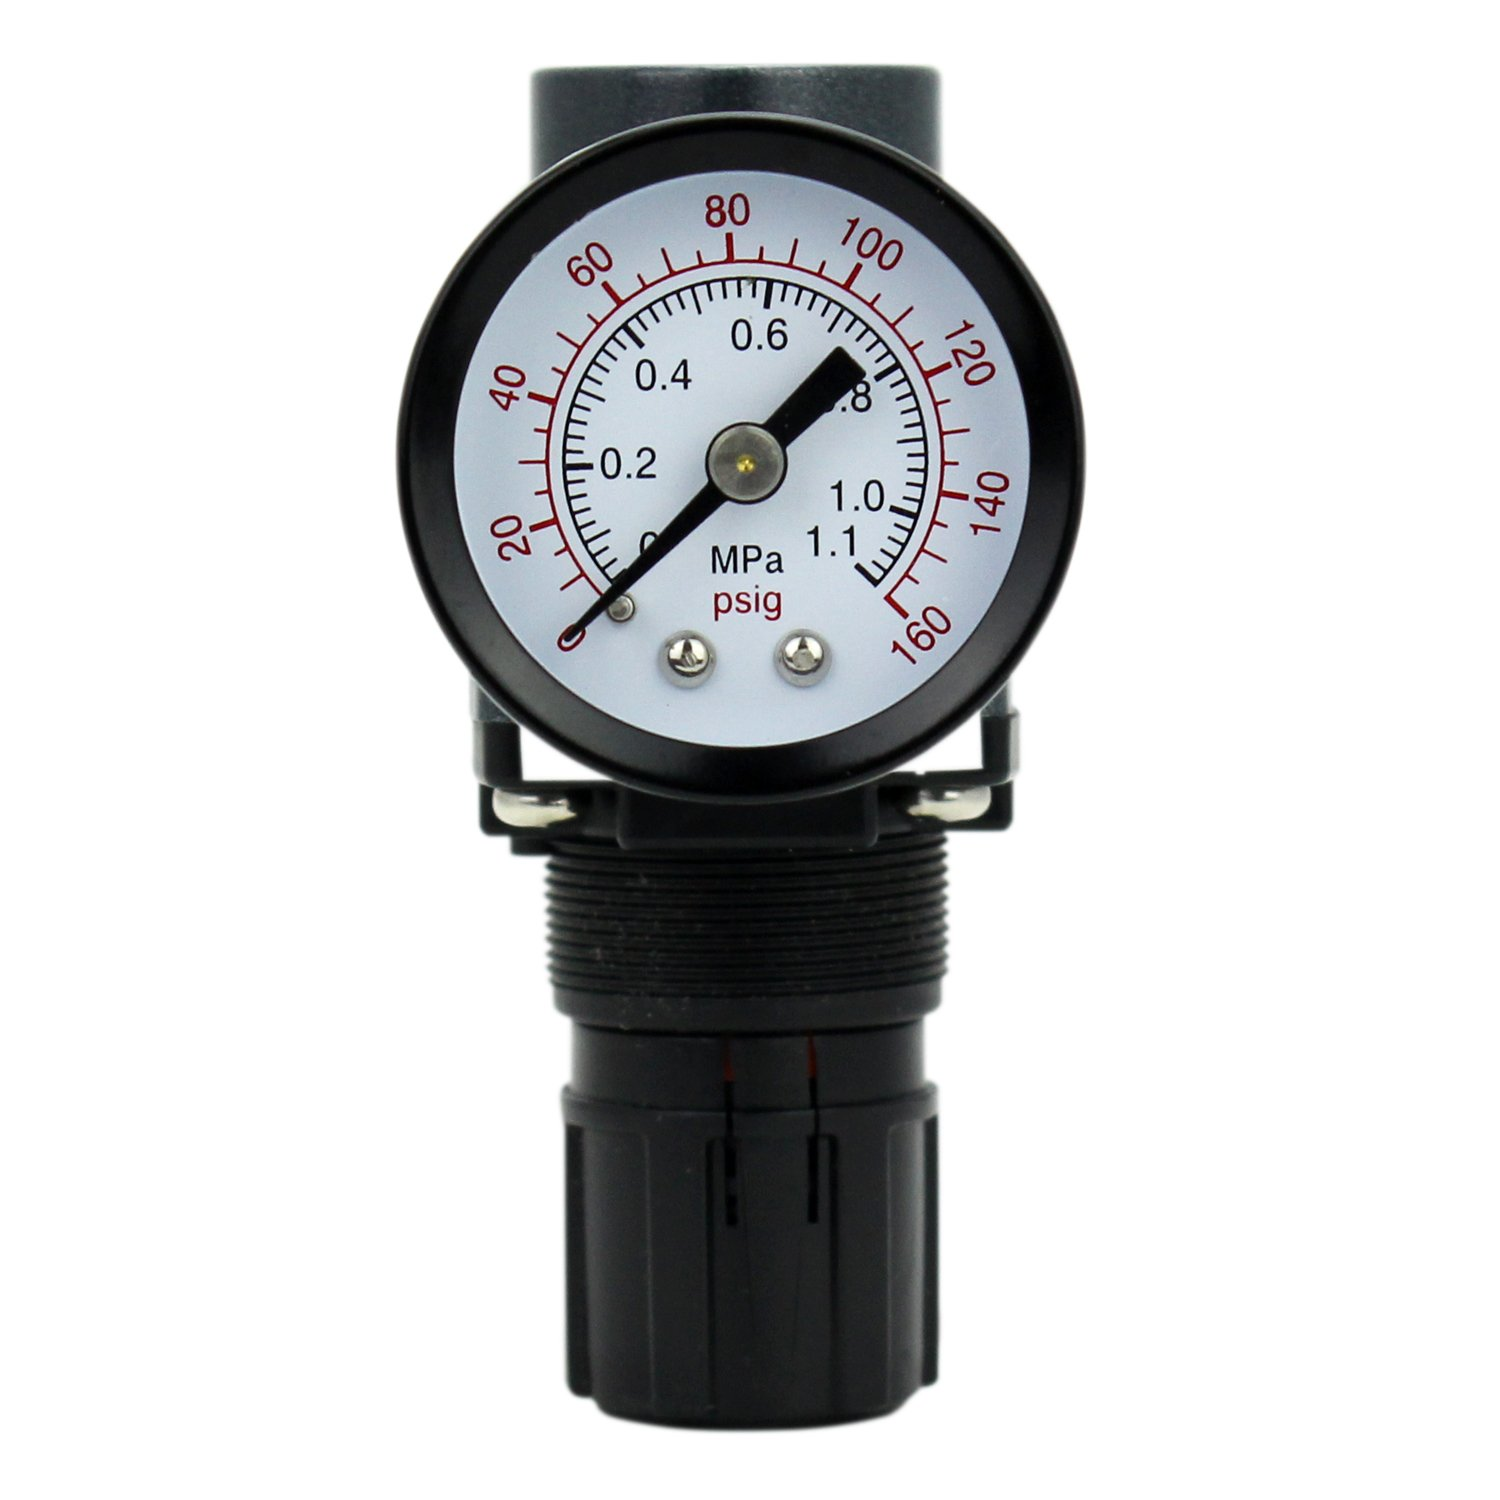 EXELAIR by Milton FRL (Mini) Air Regulator - 1/4'' NPT (EX25R-02) by EXELAIR